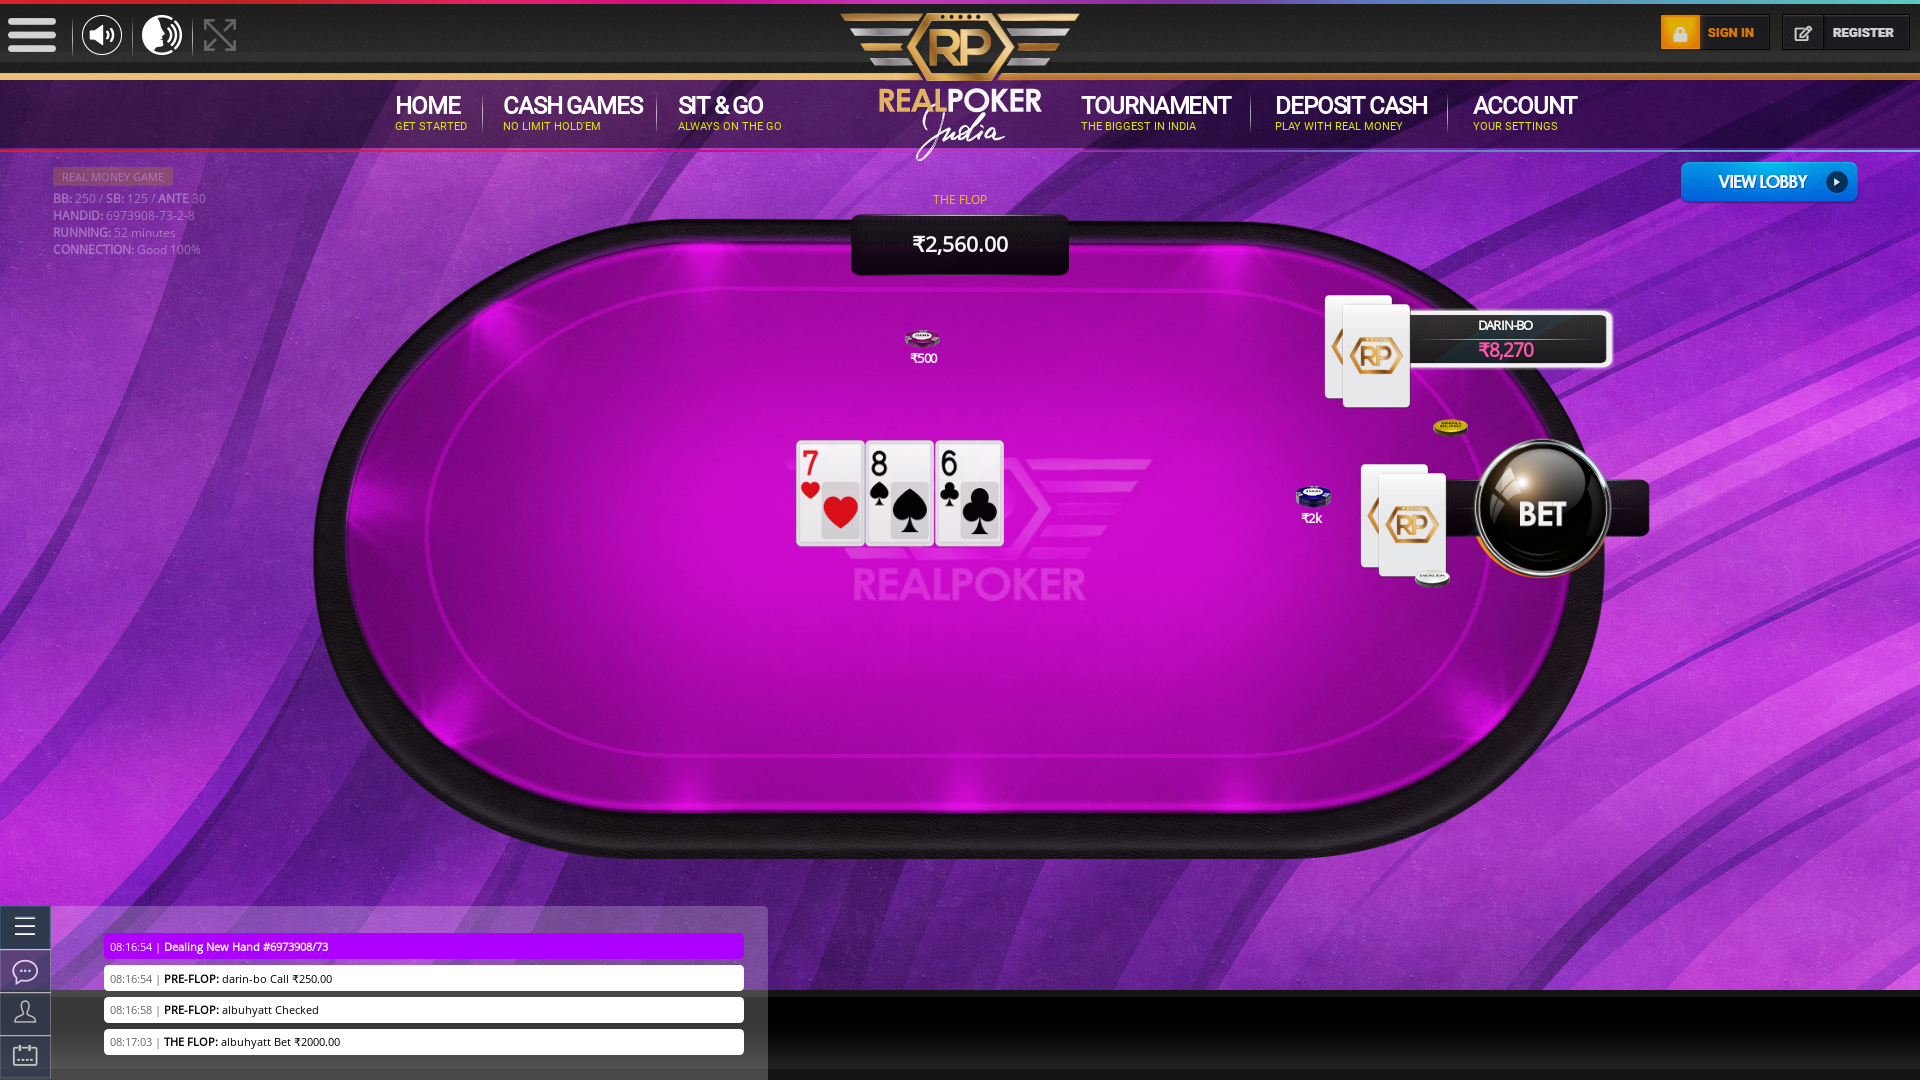 10 player poker in the 51st minute